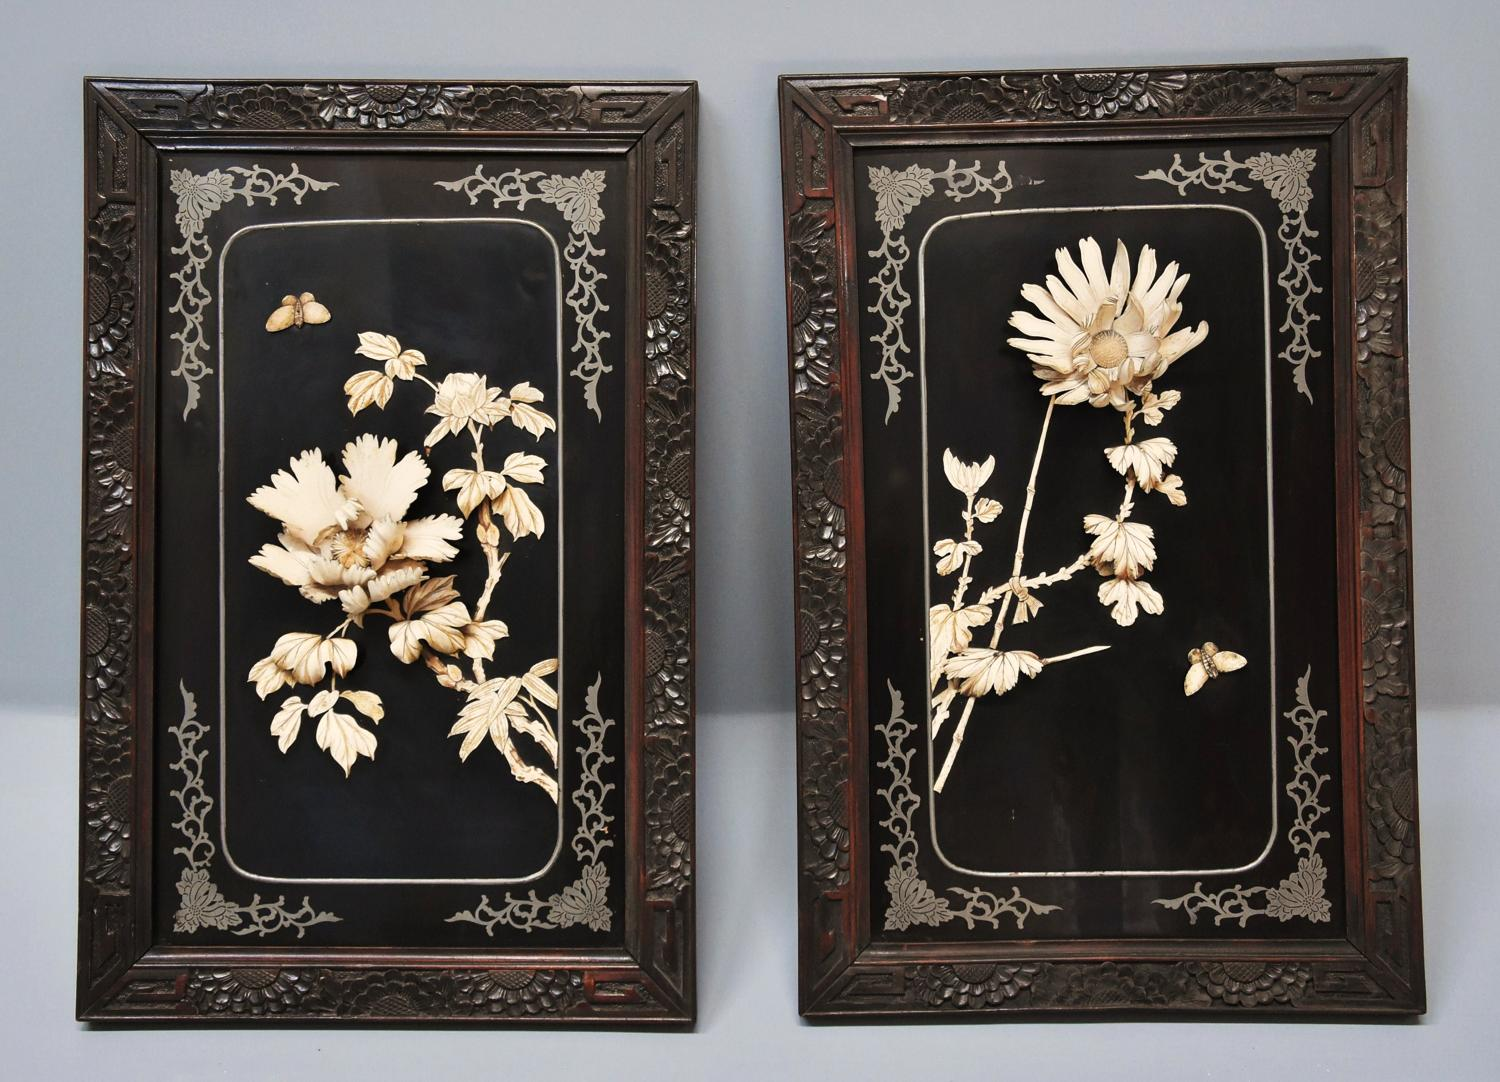 Pair of lacquered Japanese panels